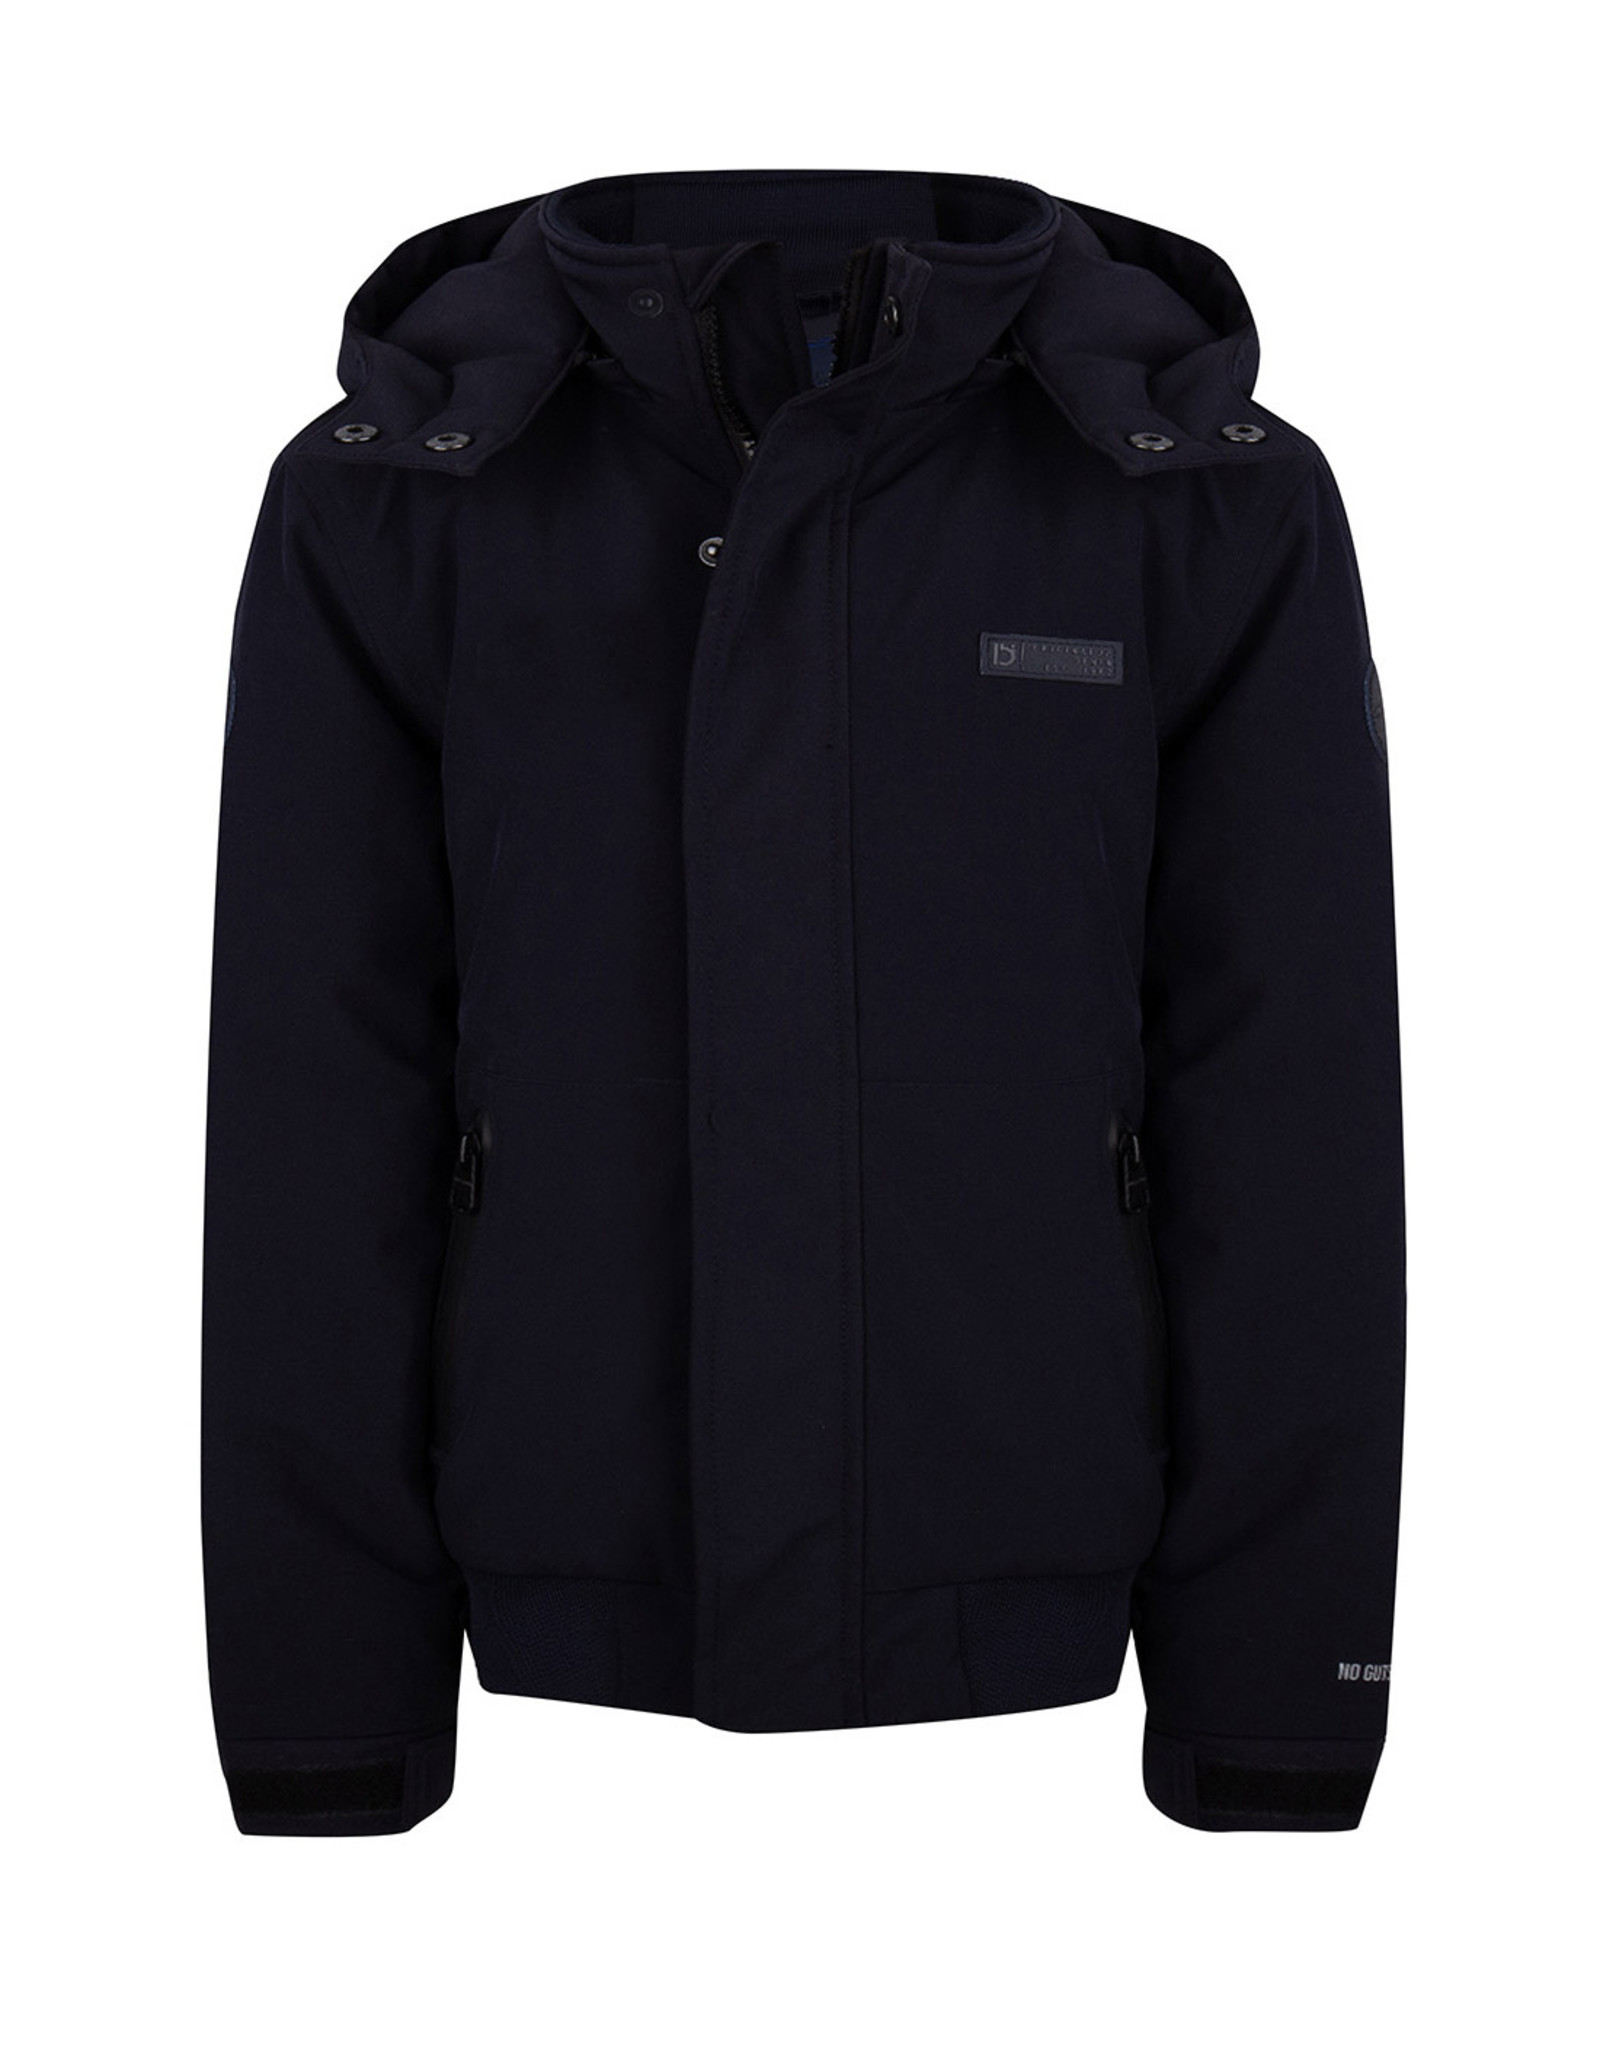 Indian Blue Jeans IBJ Hooded Jacket Softshell Navy